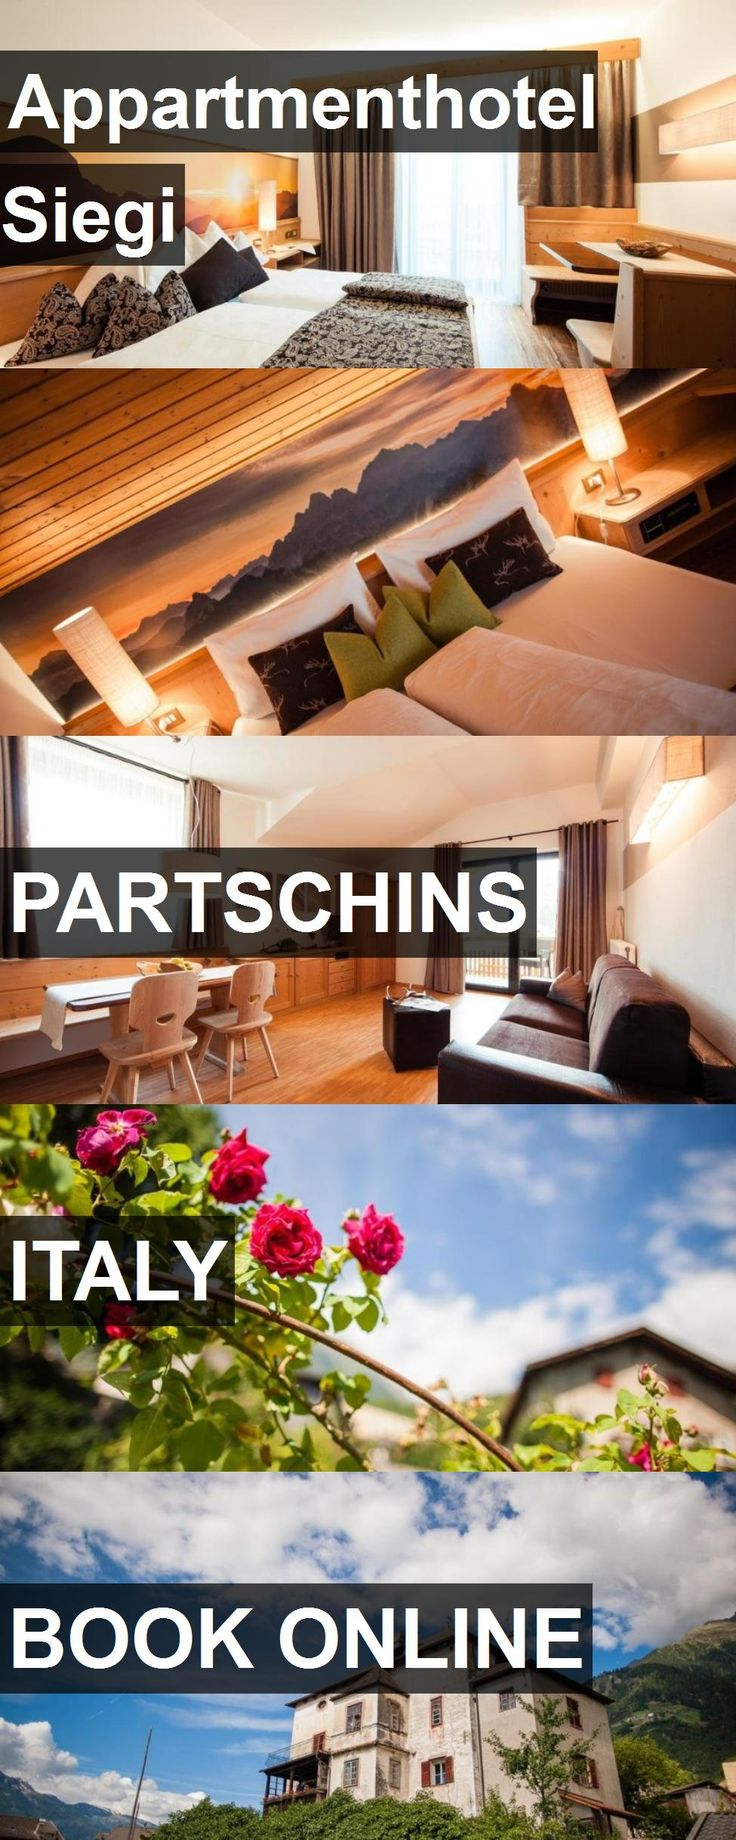 Appartmenthotel Siegi in Partschins, Italy. For more information, photos, reviews and best prices please follow the link. #Italy #Partschins #travel #vacation #hotel